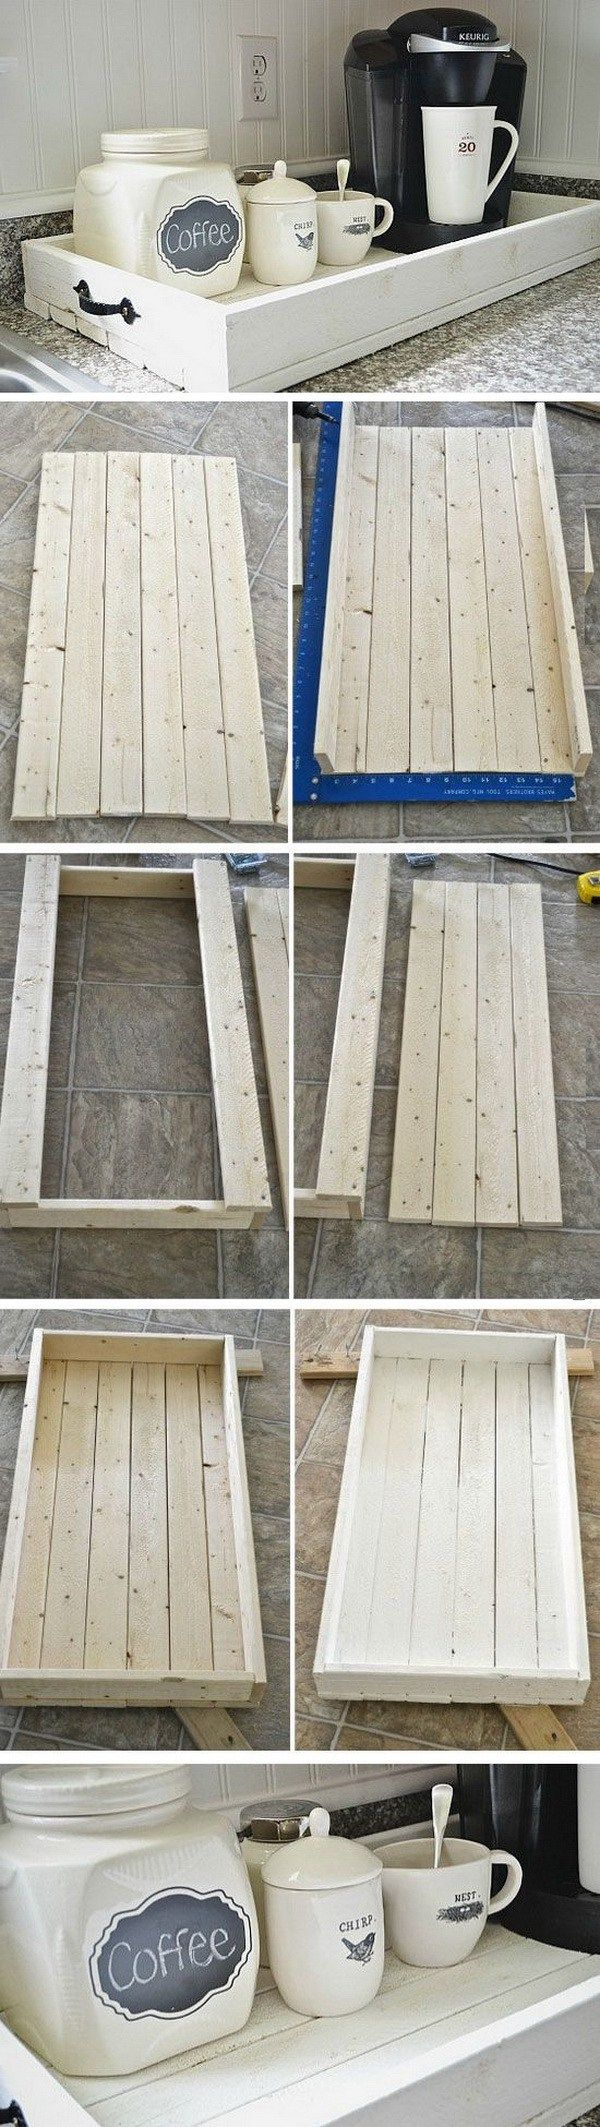 DIY Rustic Wood Tray. Love this tray for our coffee station in my kitchen! You can make it with some pallet wood boards and a bit of woodworking skills.